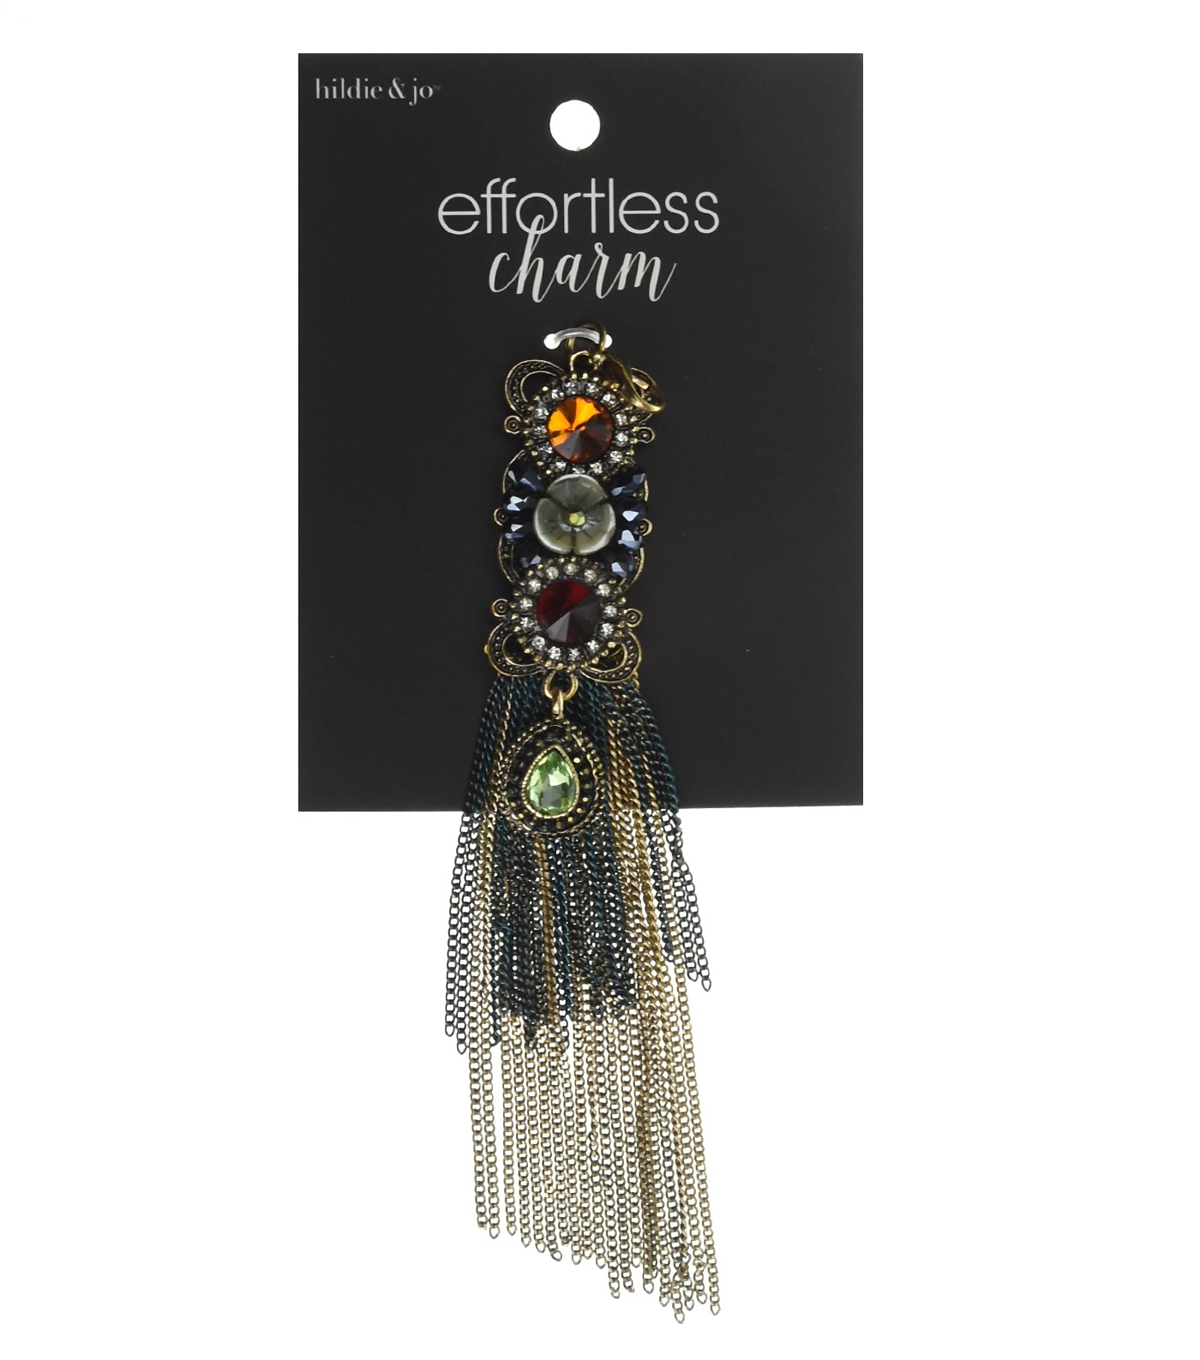 hildie & jo Effortless Charm Antique Gold Tassel-Stones